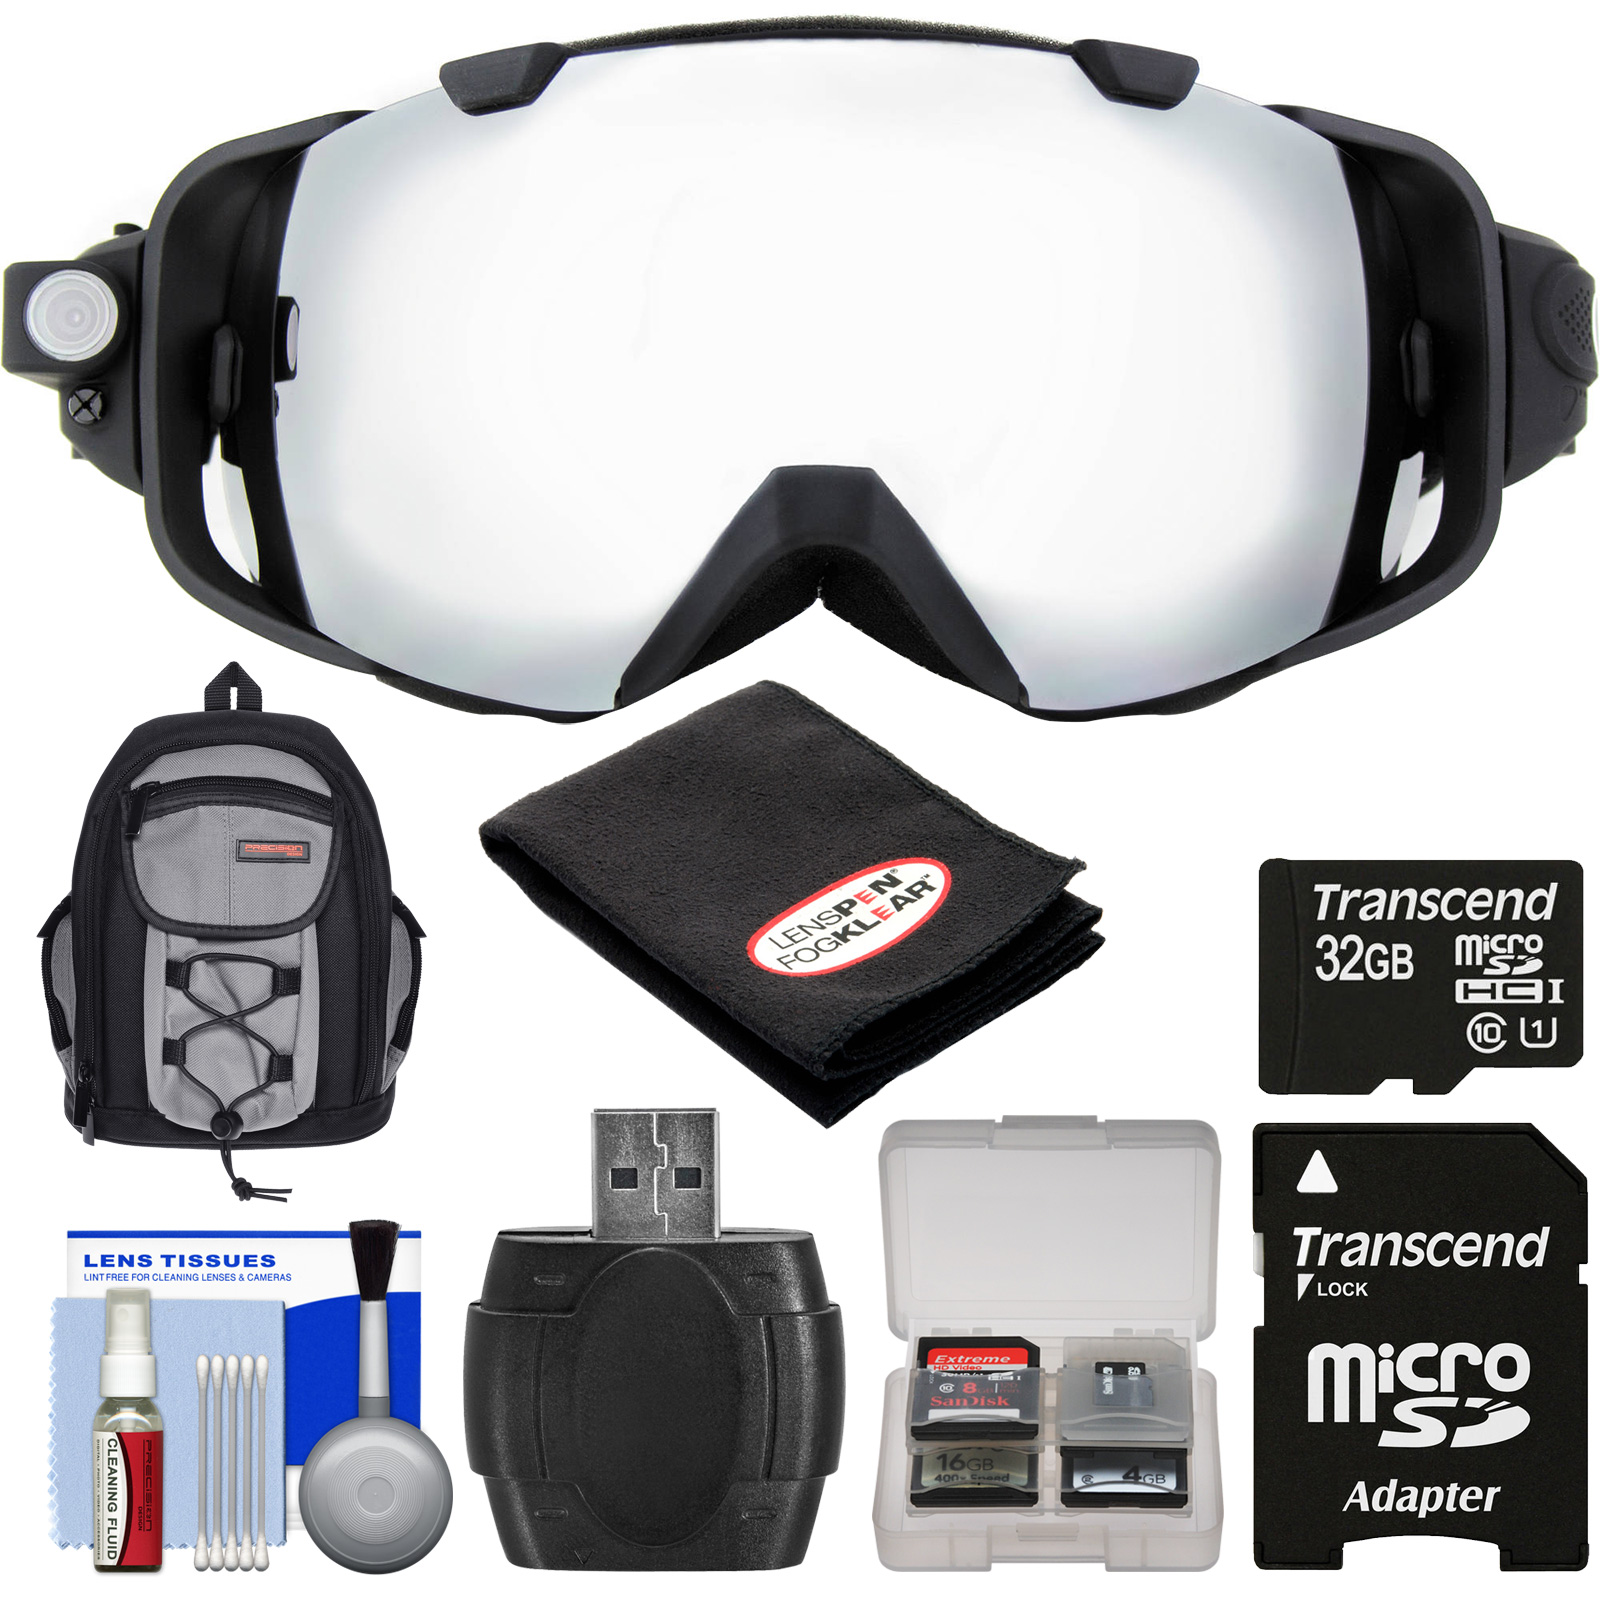 Coleman VisionHD G9HD-SKI 1080p HD Action Video Camera Camcorder Waterproof POV Snow and Ski Goggles with 32GB Card + Backpack + Anti-Fog Cloth + Reader + Kit